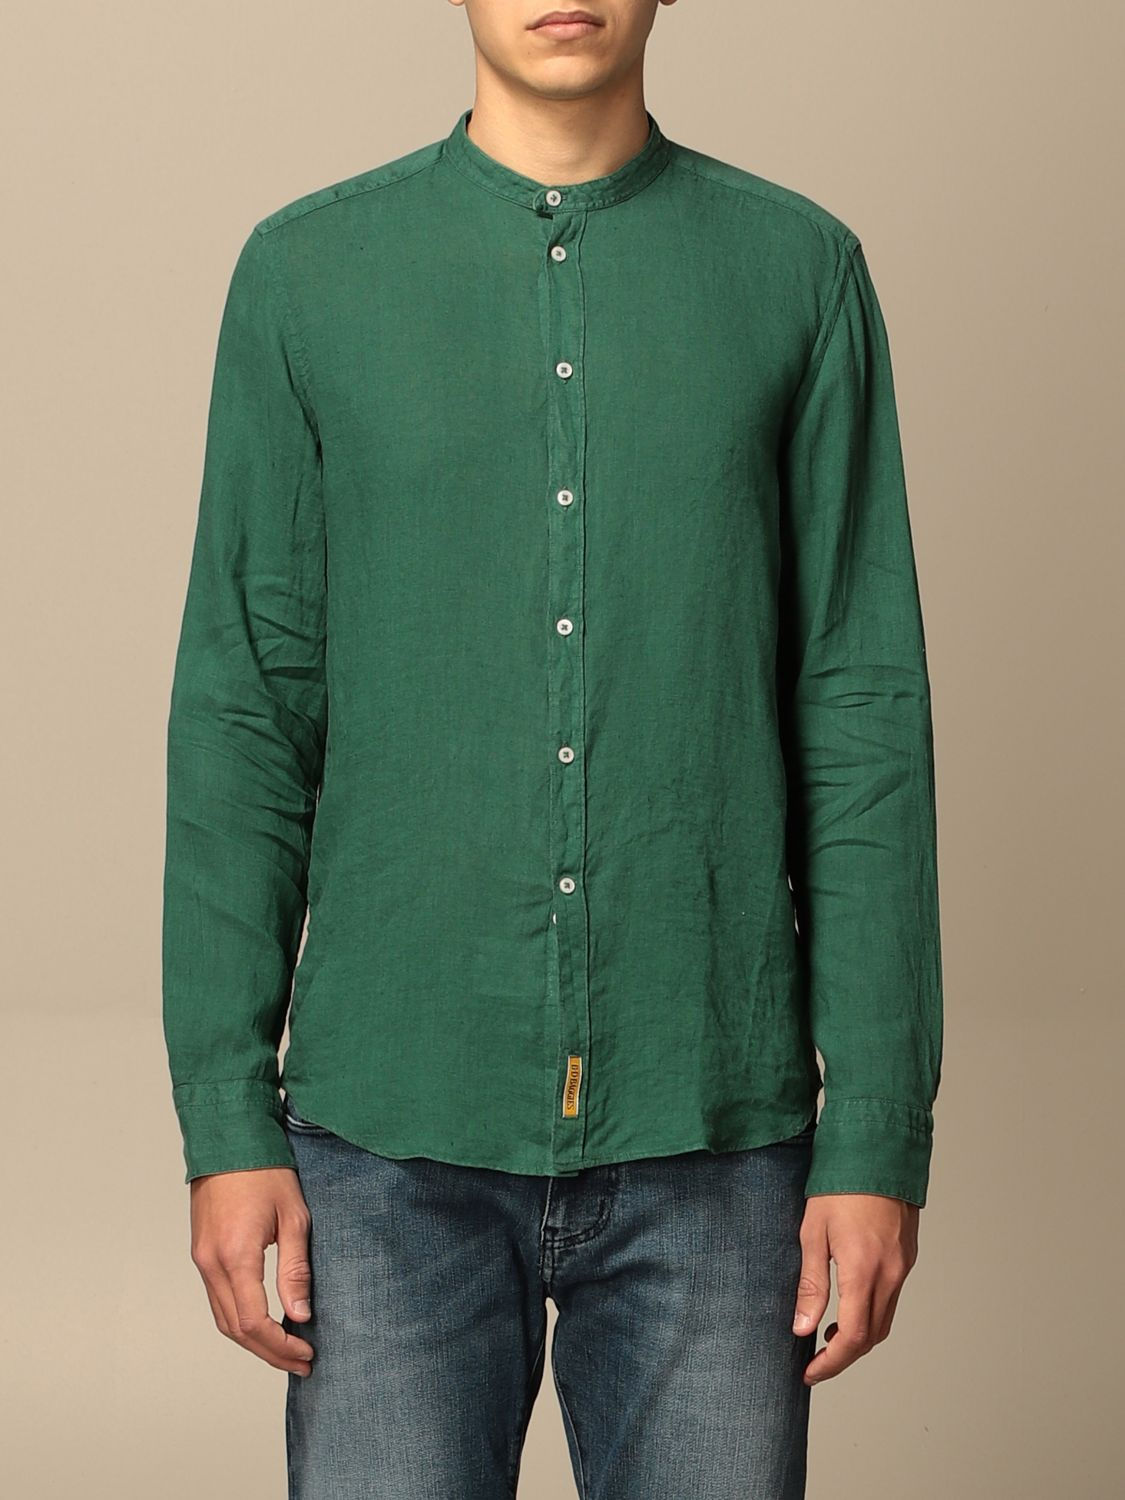 Chemise An American Tradition: Chemise homme Bd Baggies vert sapin 1